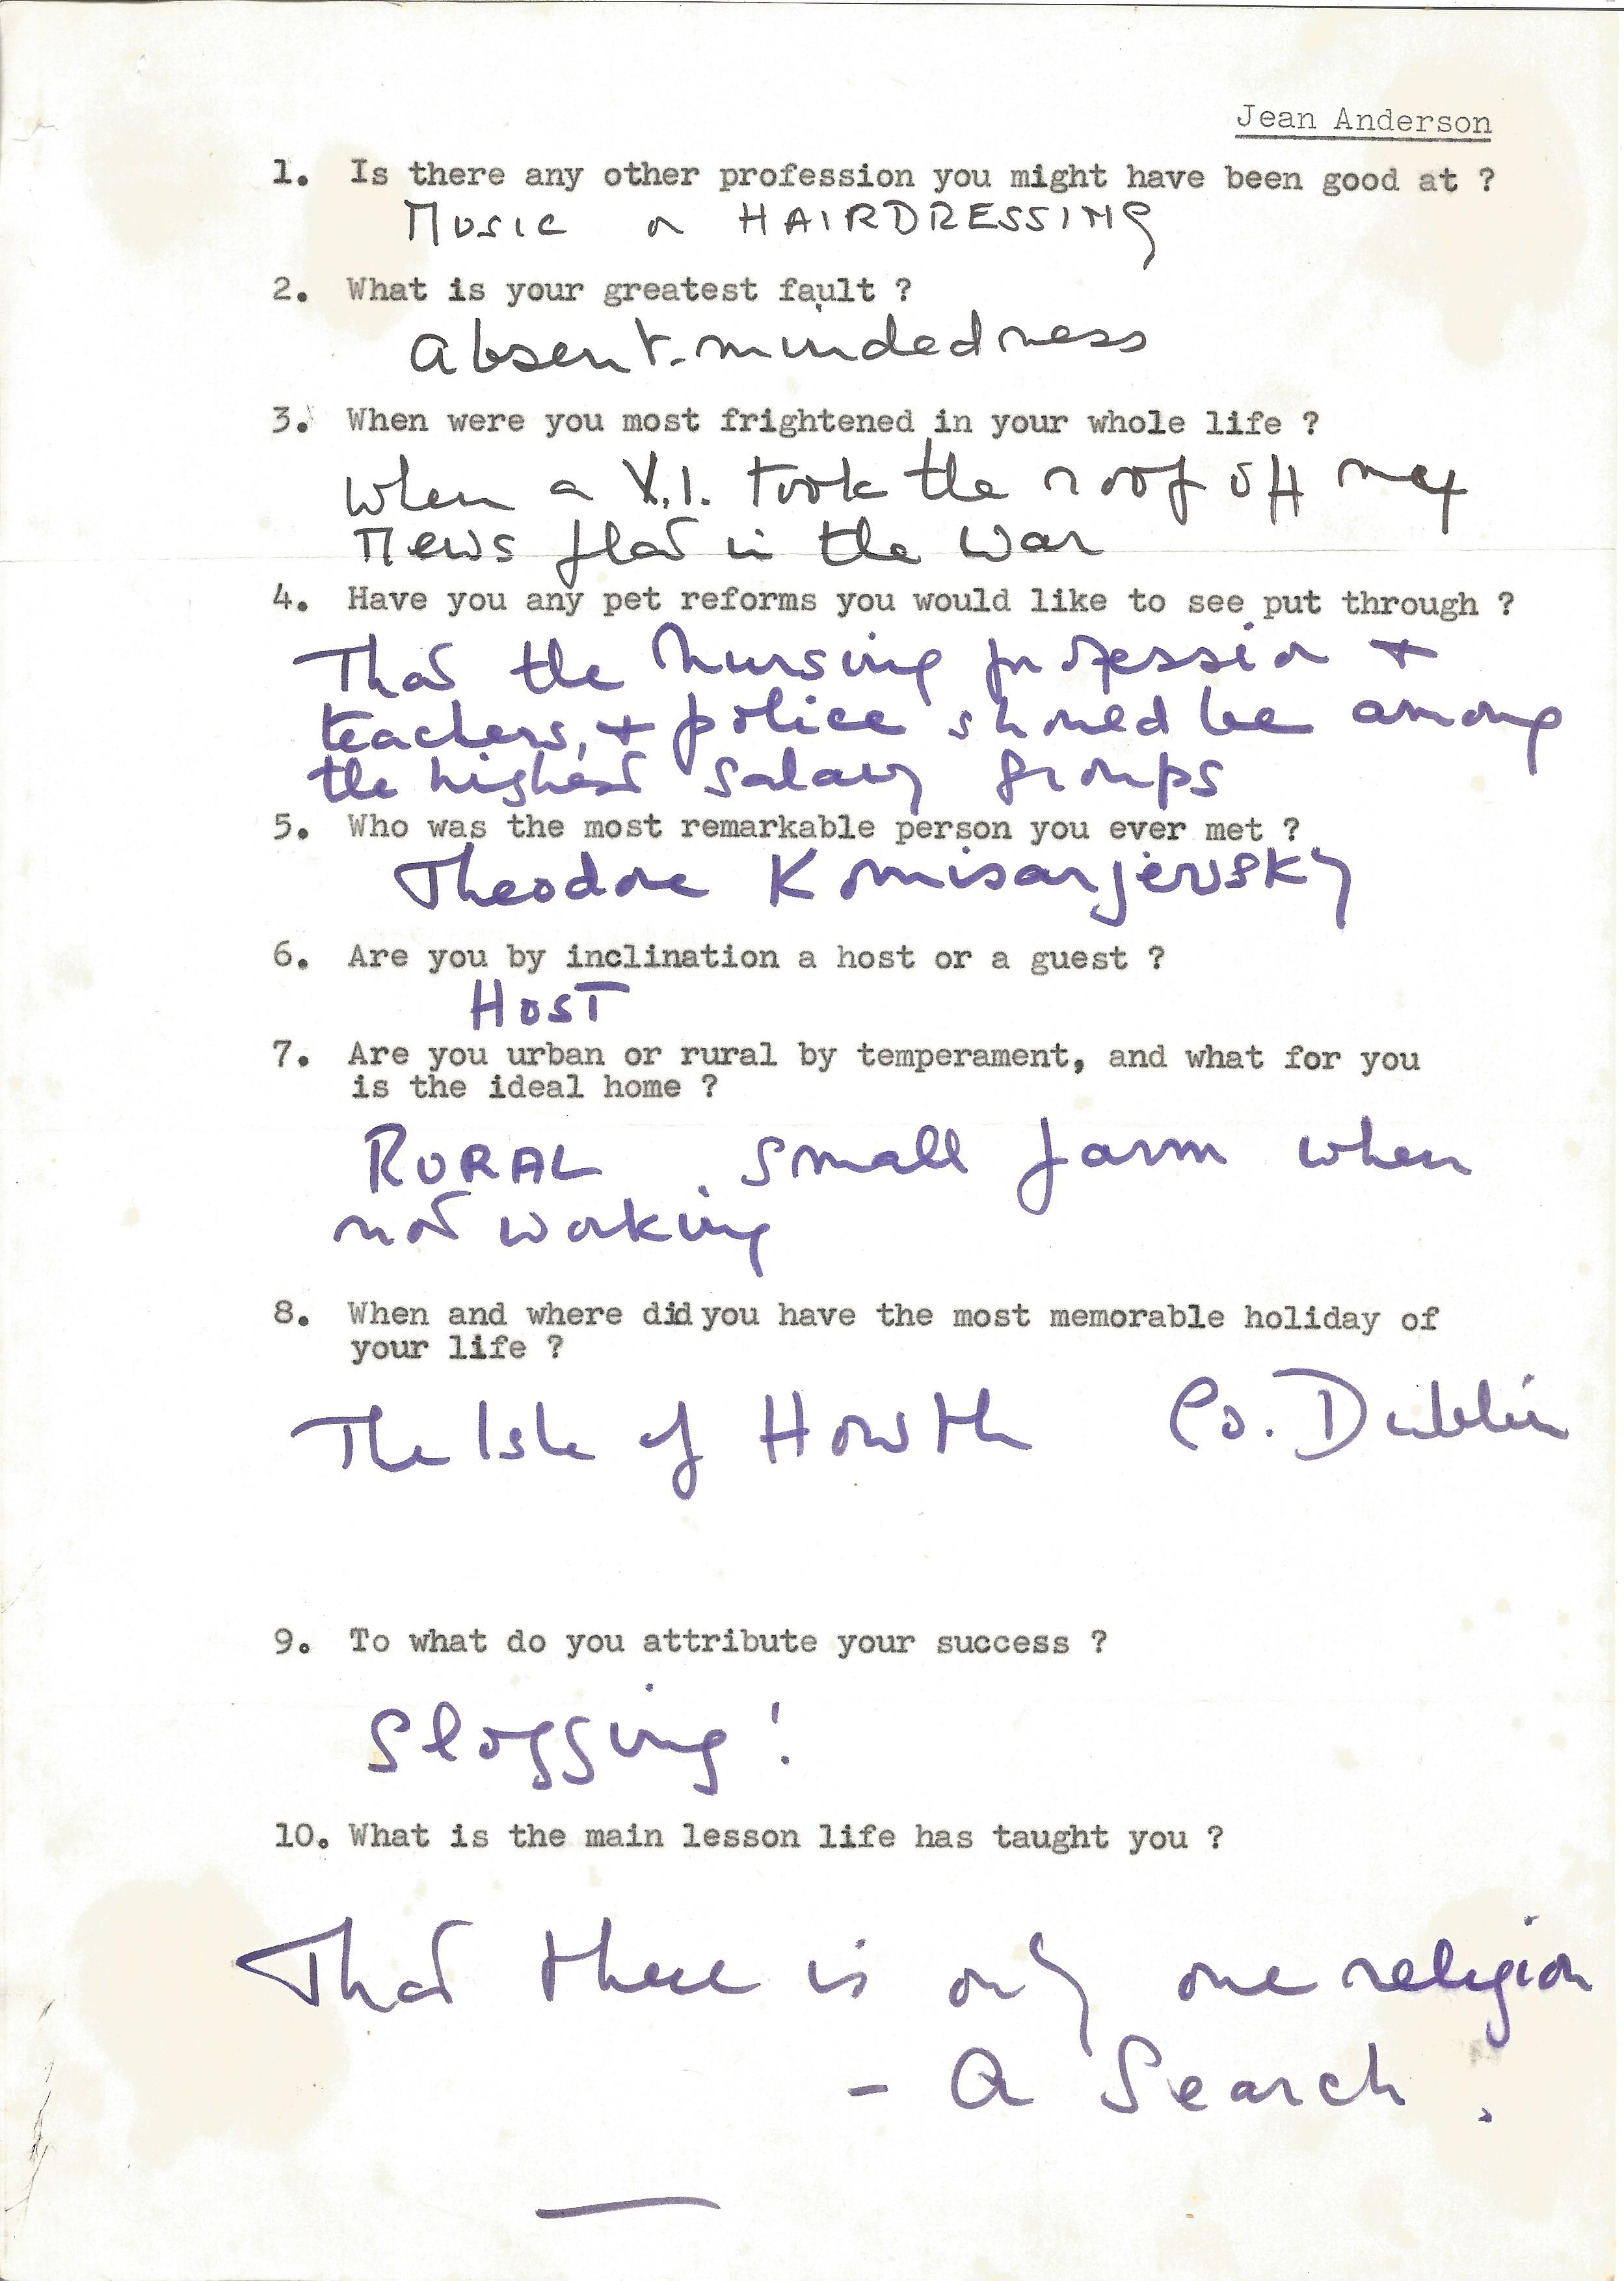 Actress Jean Anderson, brief handwritten replies on a questionnaire from a fan asking a variety of